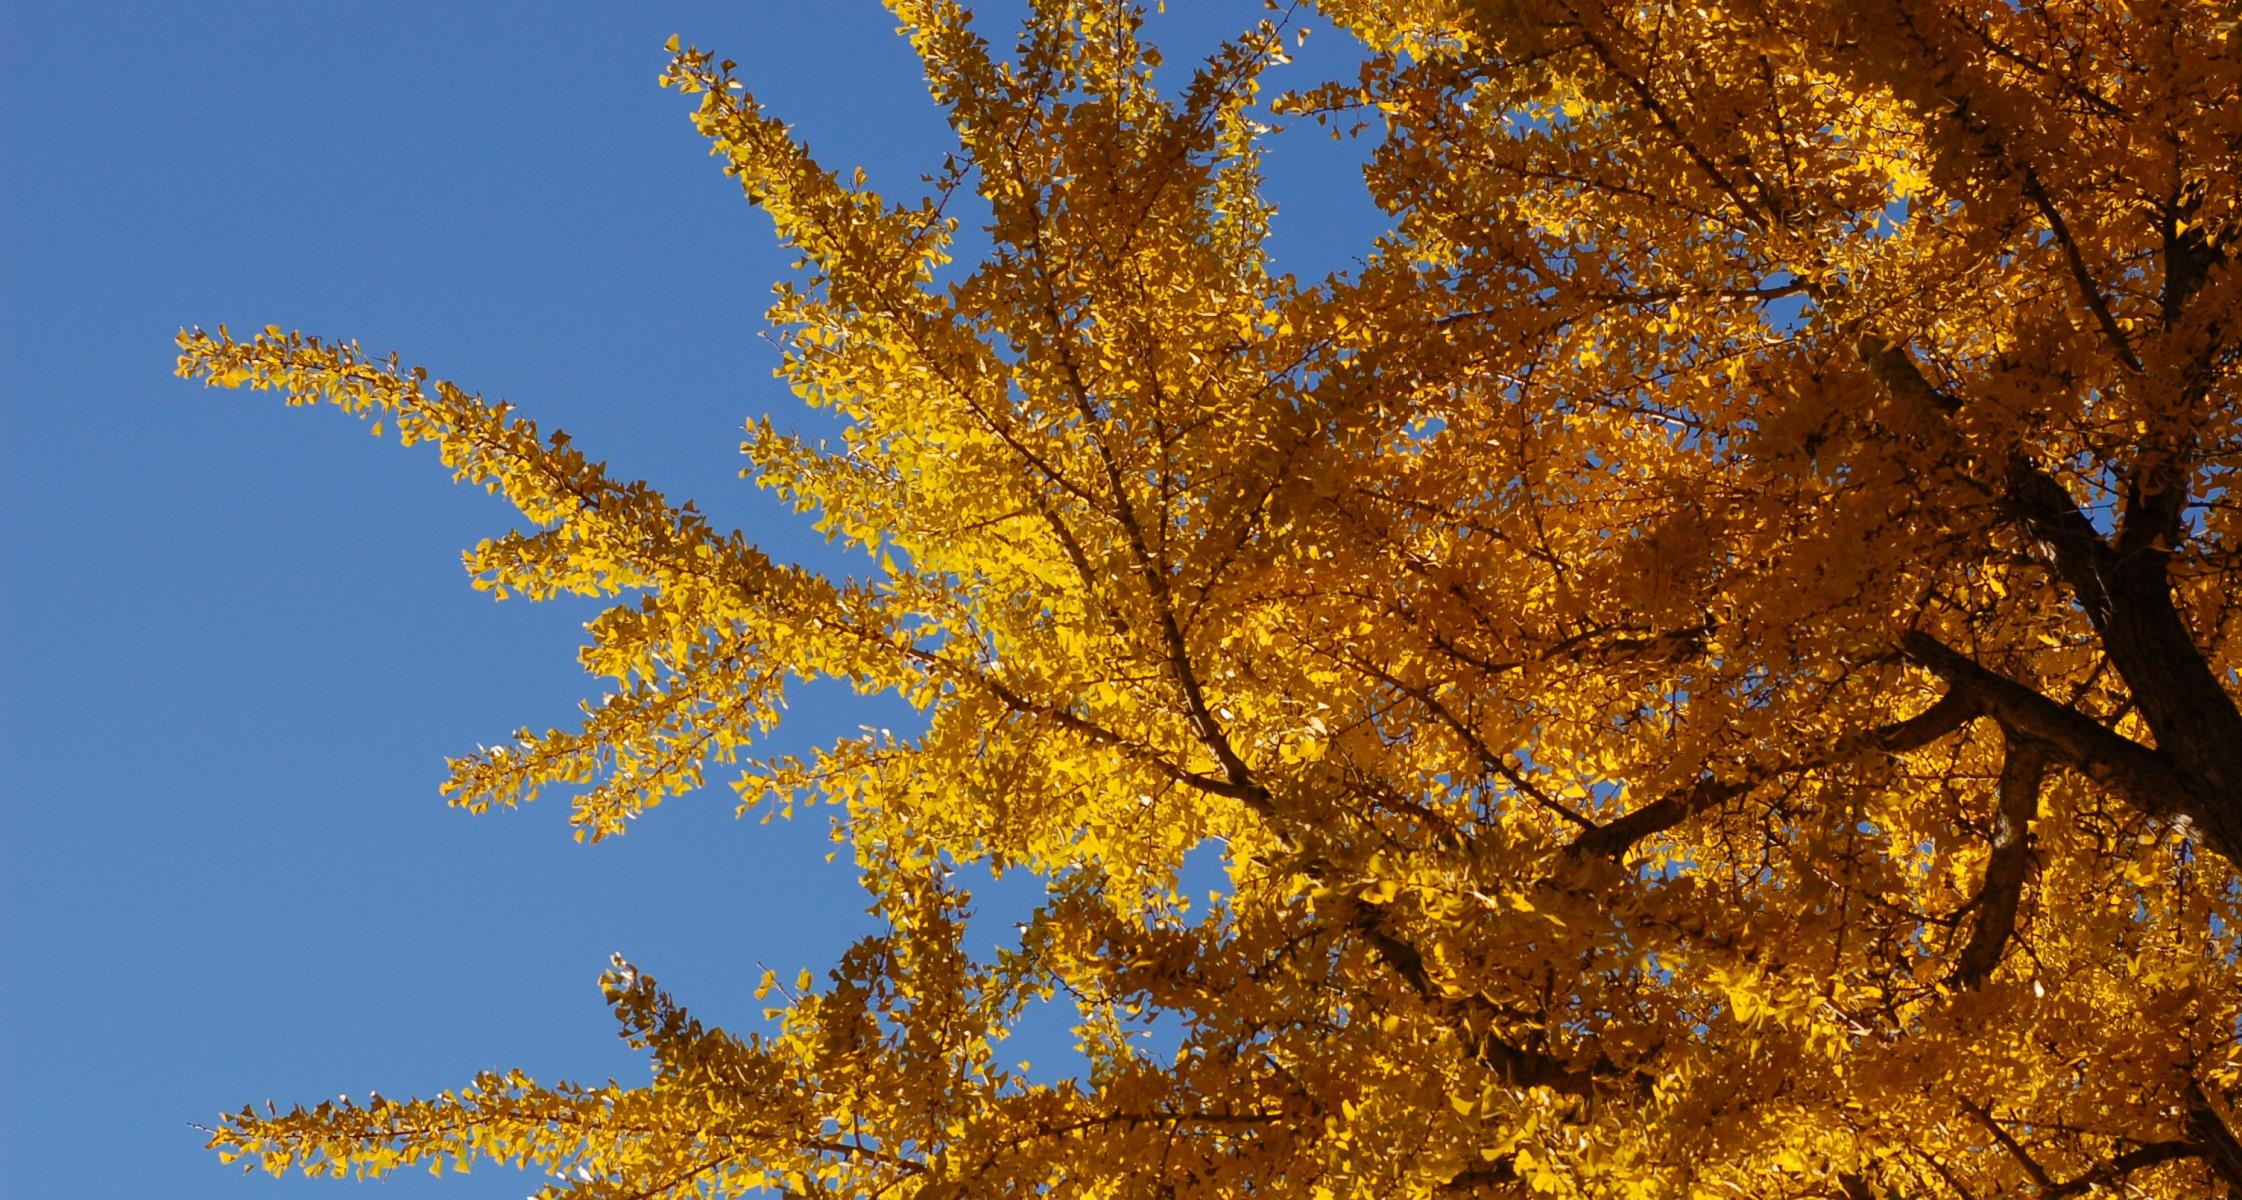 #TeachingTuesday: Ginkgo